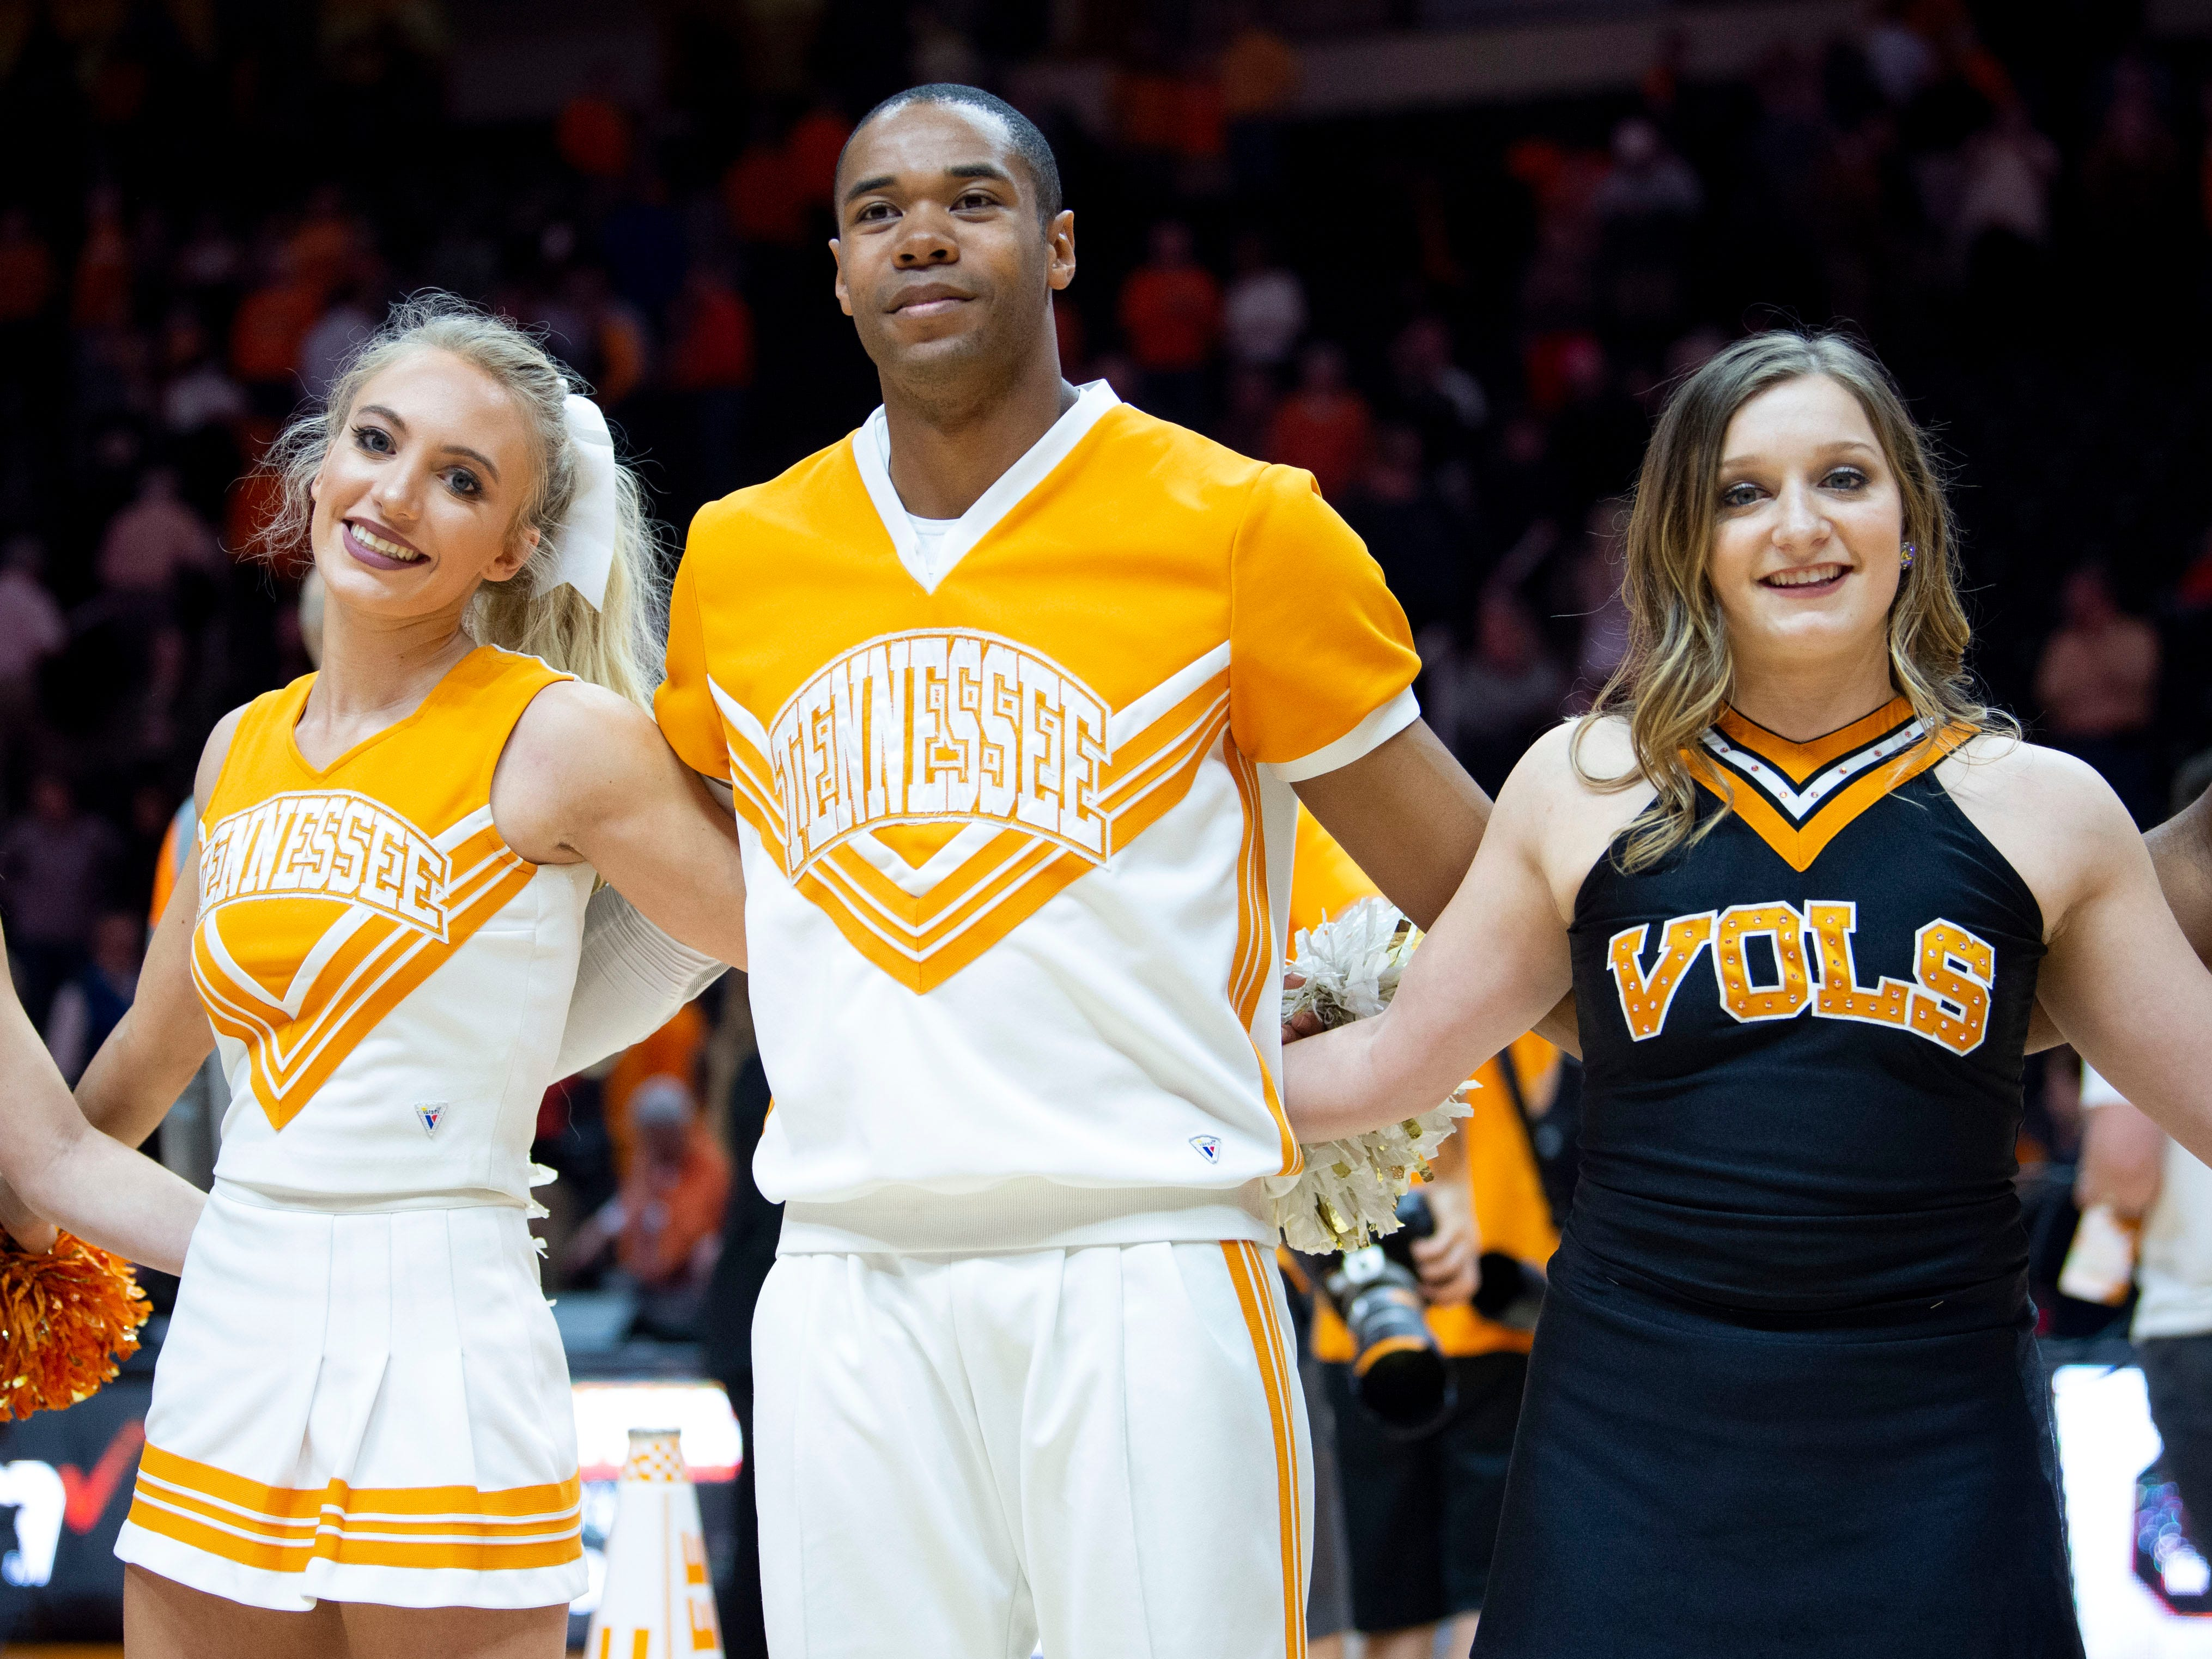 Tennessee cheer and dance entertain the sold-out crowd during the game against South Carolina on Wednesday, February 13, 2019.